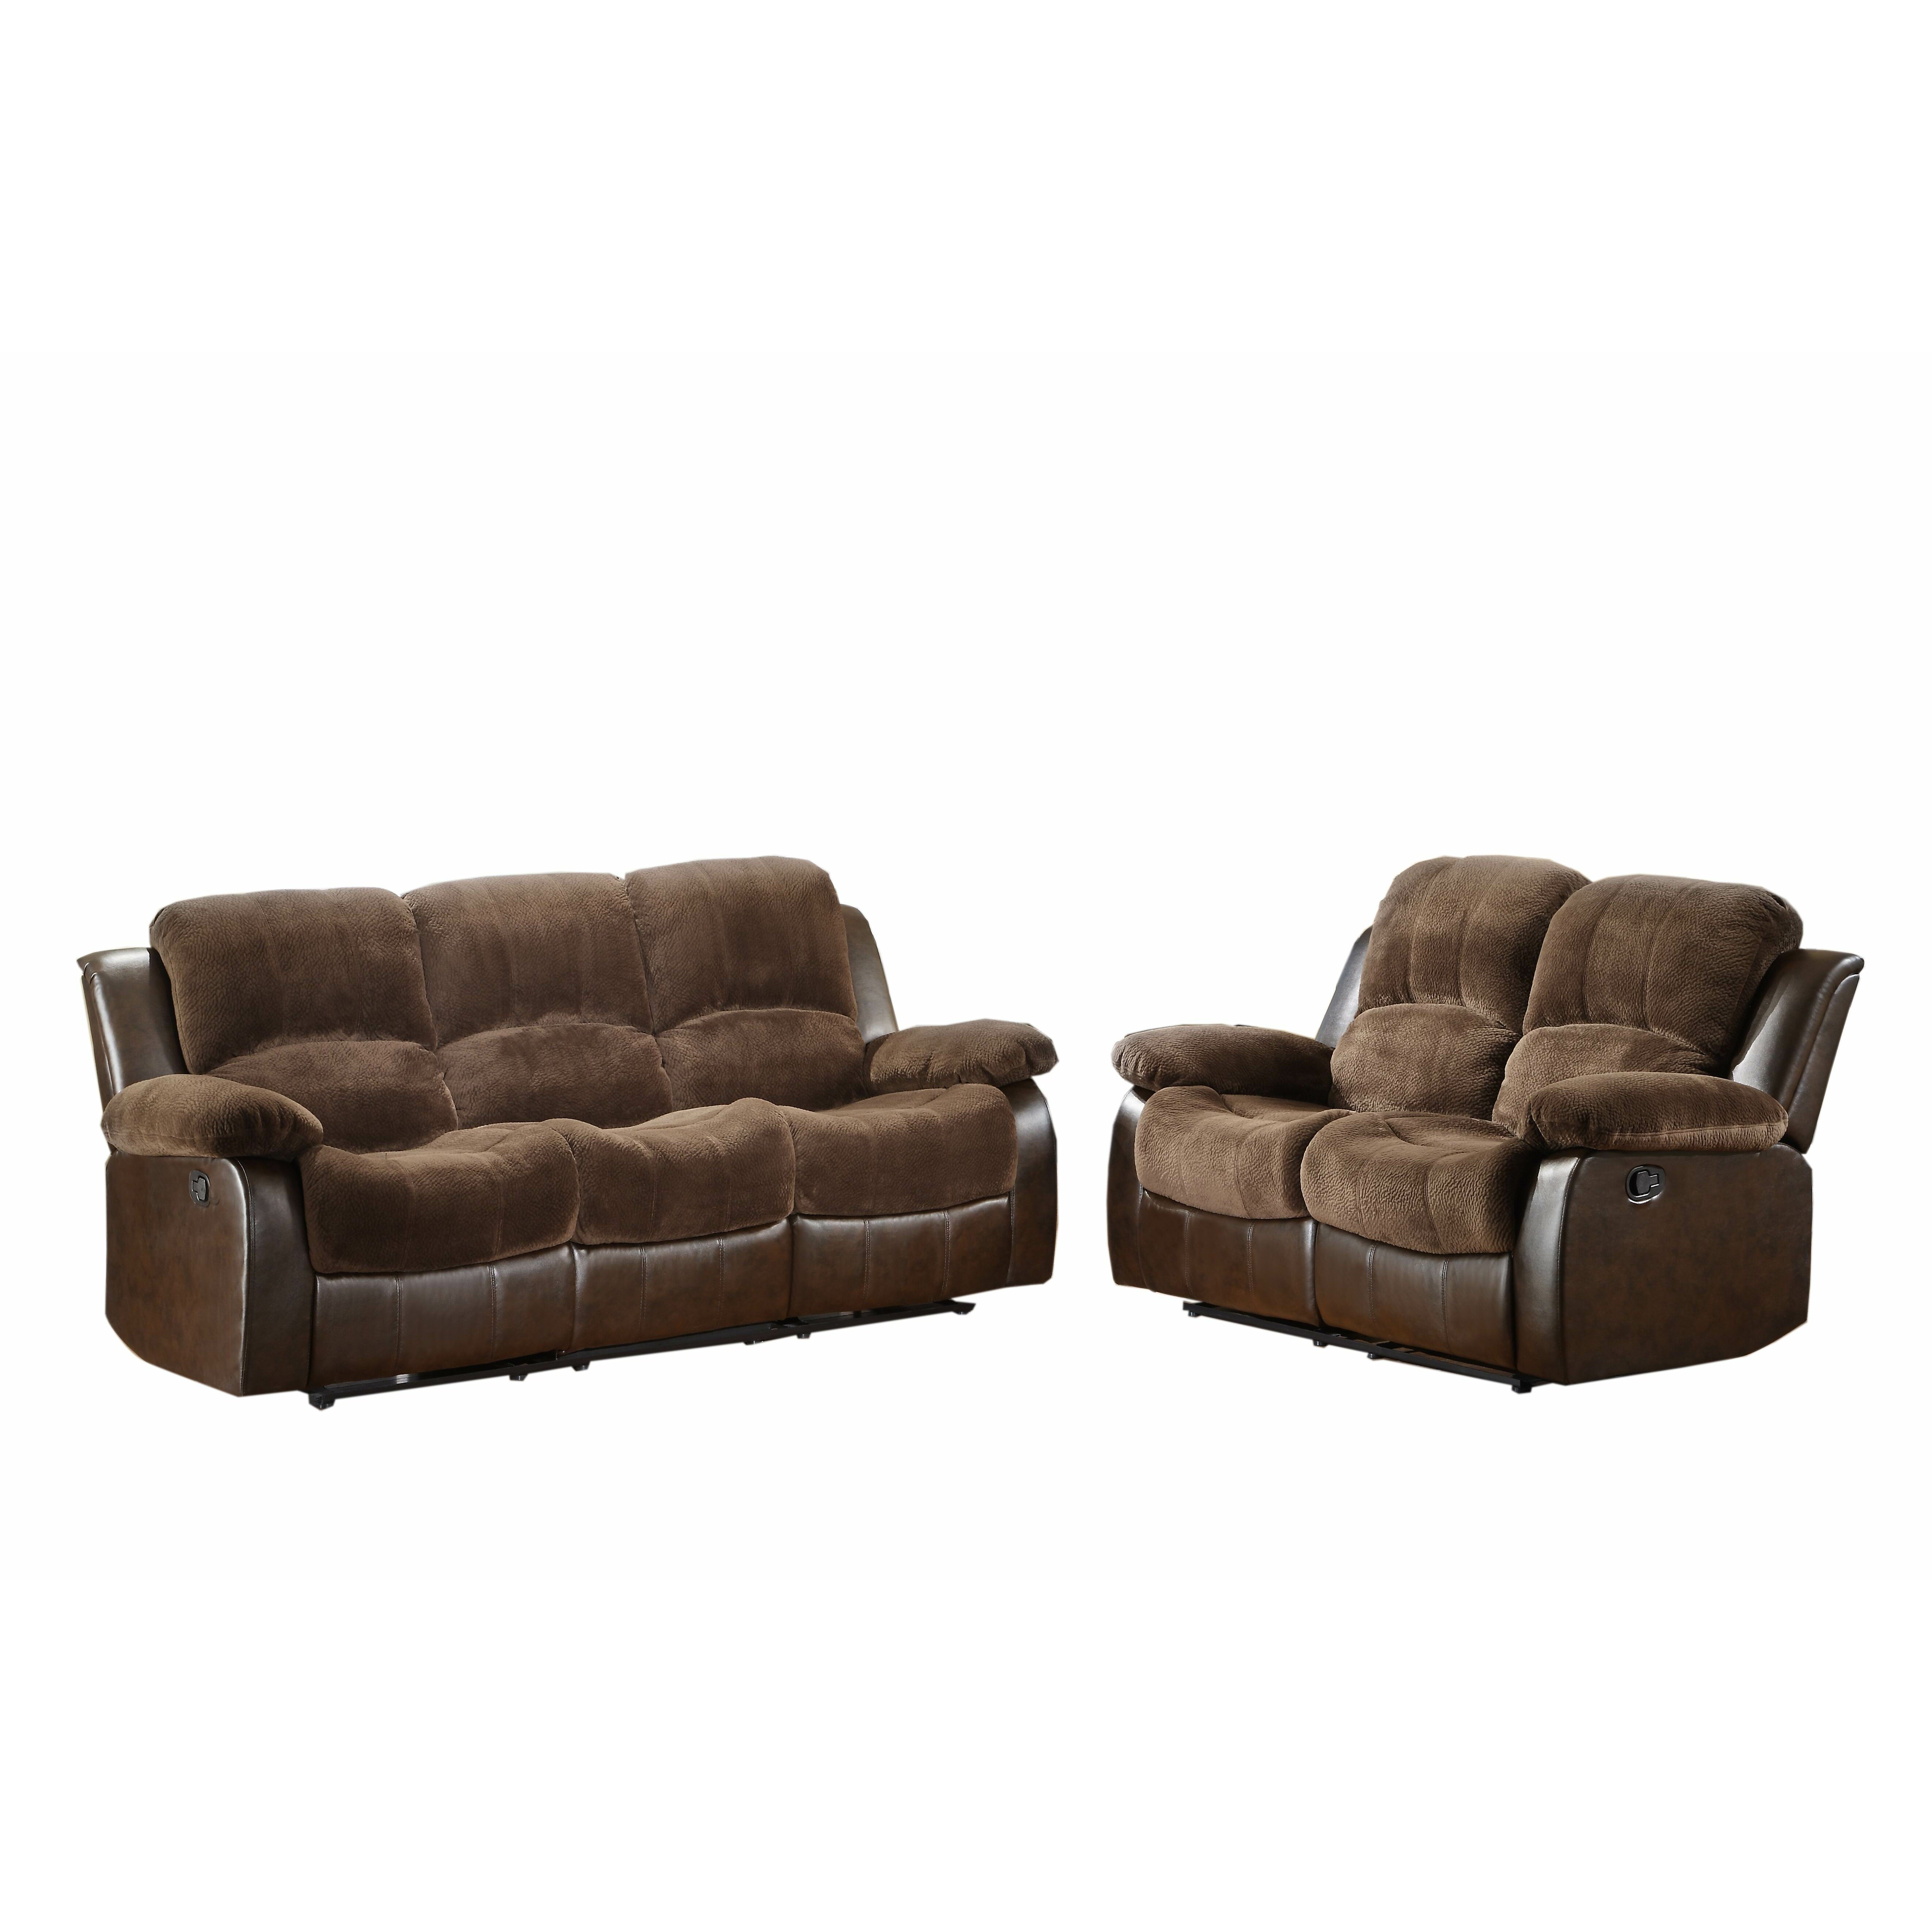 Woodhaven Hill Cranley Double Reclining Loveseat Reviews